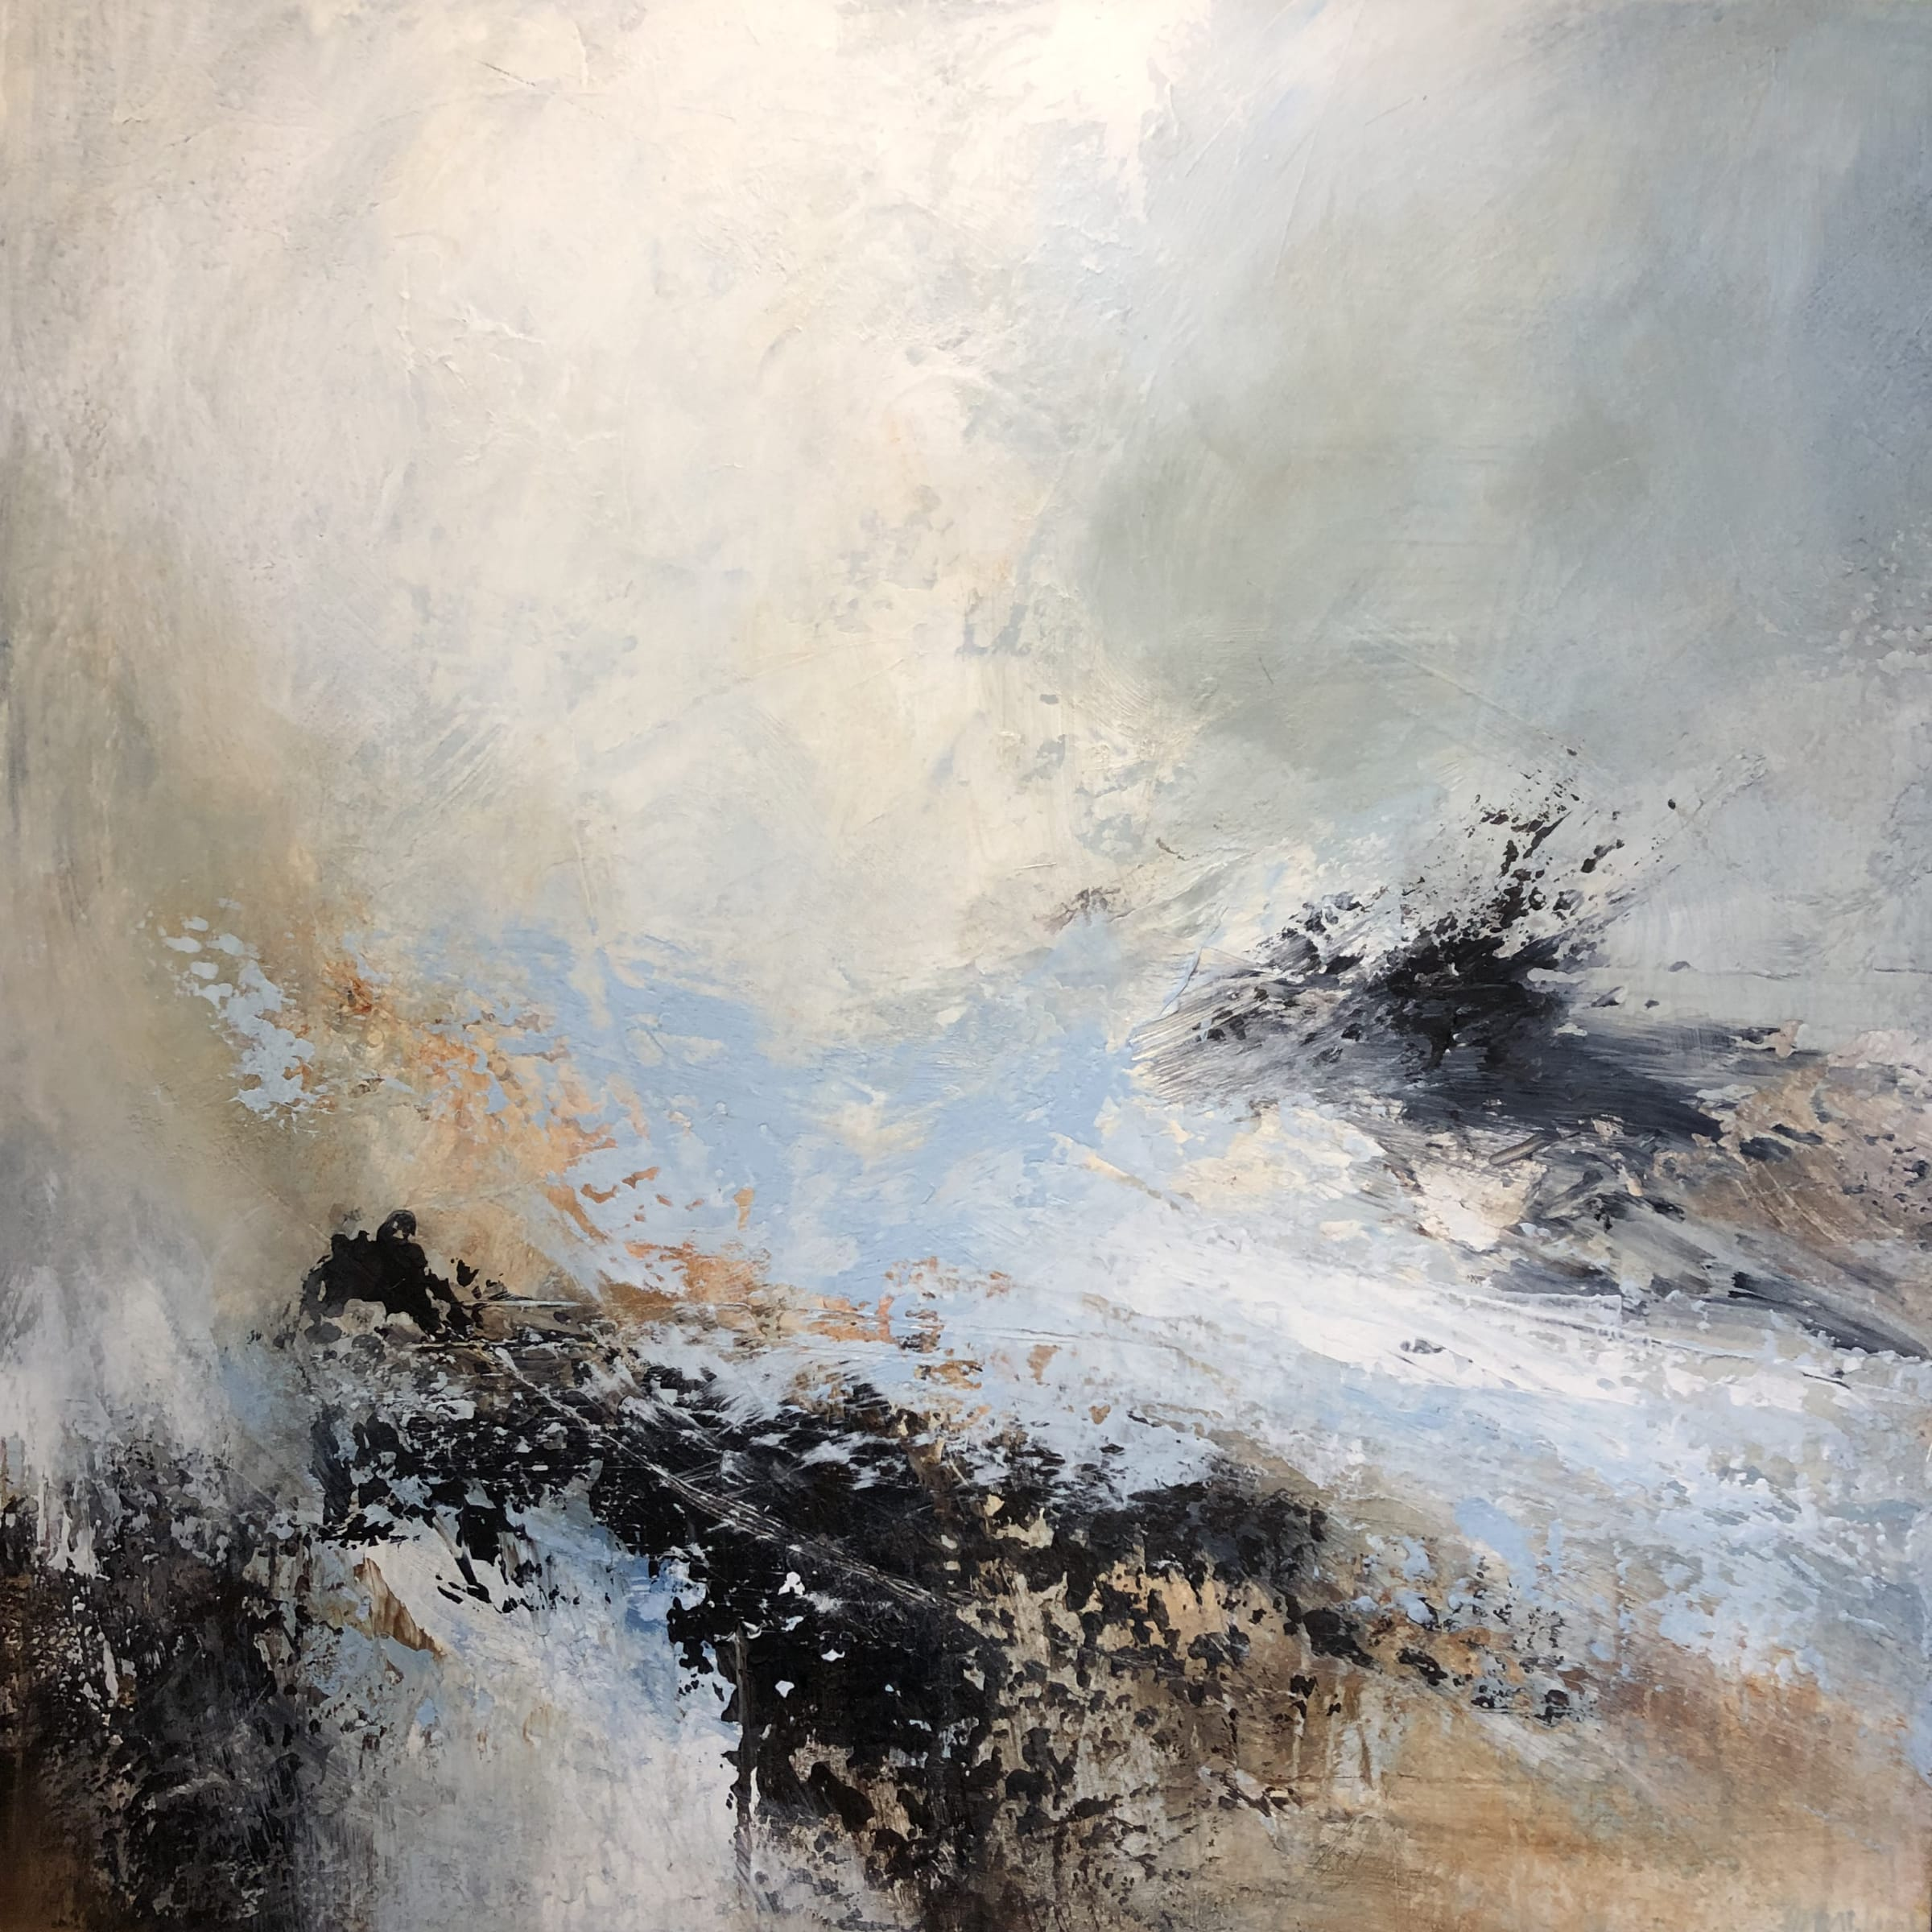 "<span class=""link fancybox-details-link""><a href=""/artists/41-erin-ward/works/6594-erin-ward-force-2019/"">View Detail Page</a></span><div class=""artist""><strong>Erin Ward</strong></div> b. 1966 <div class=""title""><em>Force</em>, 2019</div> <div class=""medium"">acrylic on canvas</div> <div class=""dimensions"">h. 76 cm x w. 76 cm </div><div class=""price"">£1,300.00</div><div class=""copyright_line"">Ownart: £130 x 10 Months, 0% APR</div>"